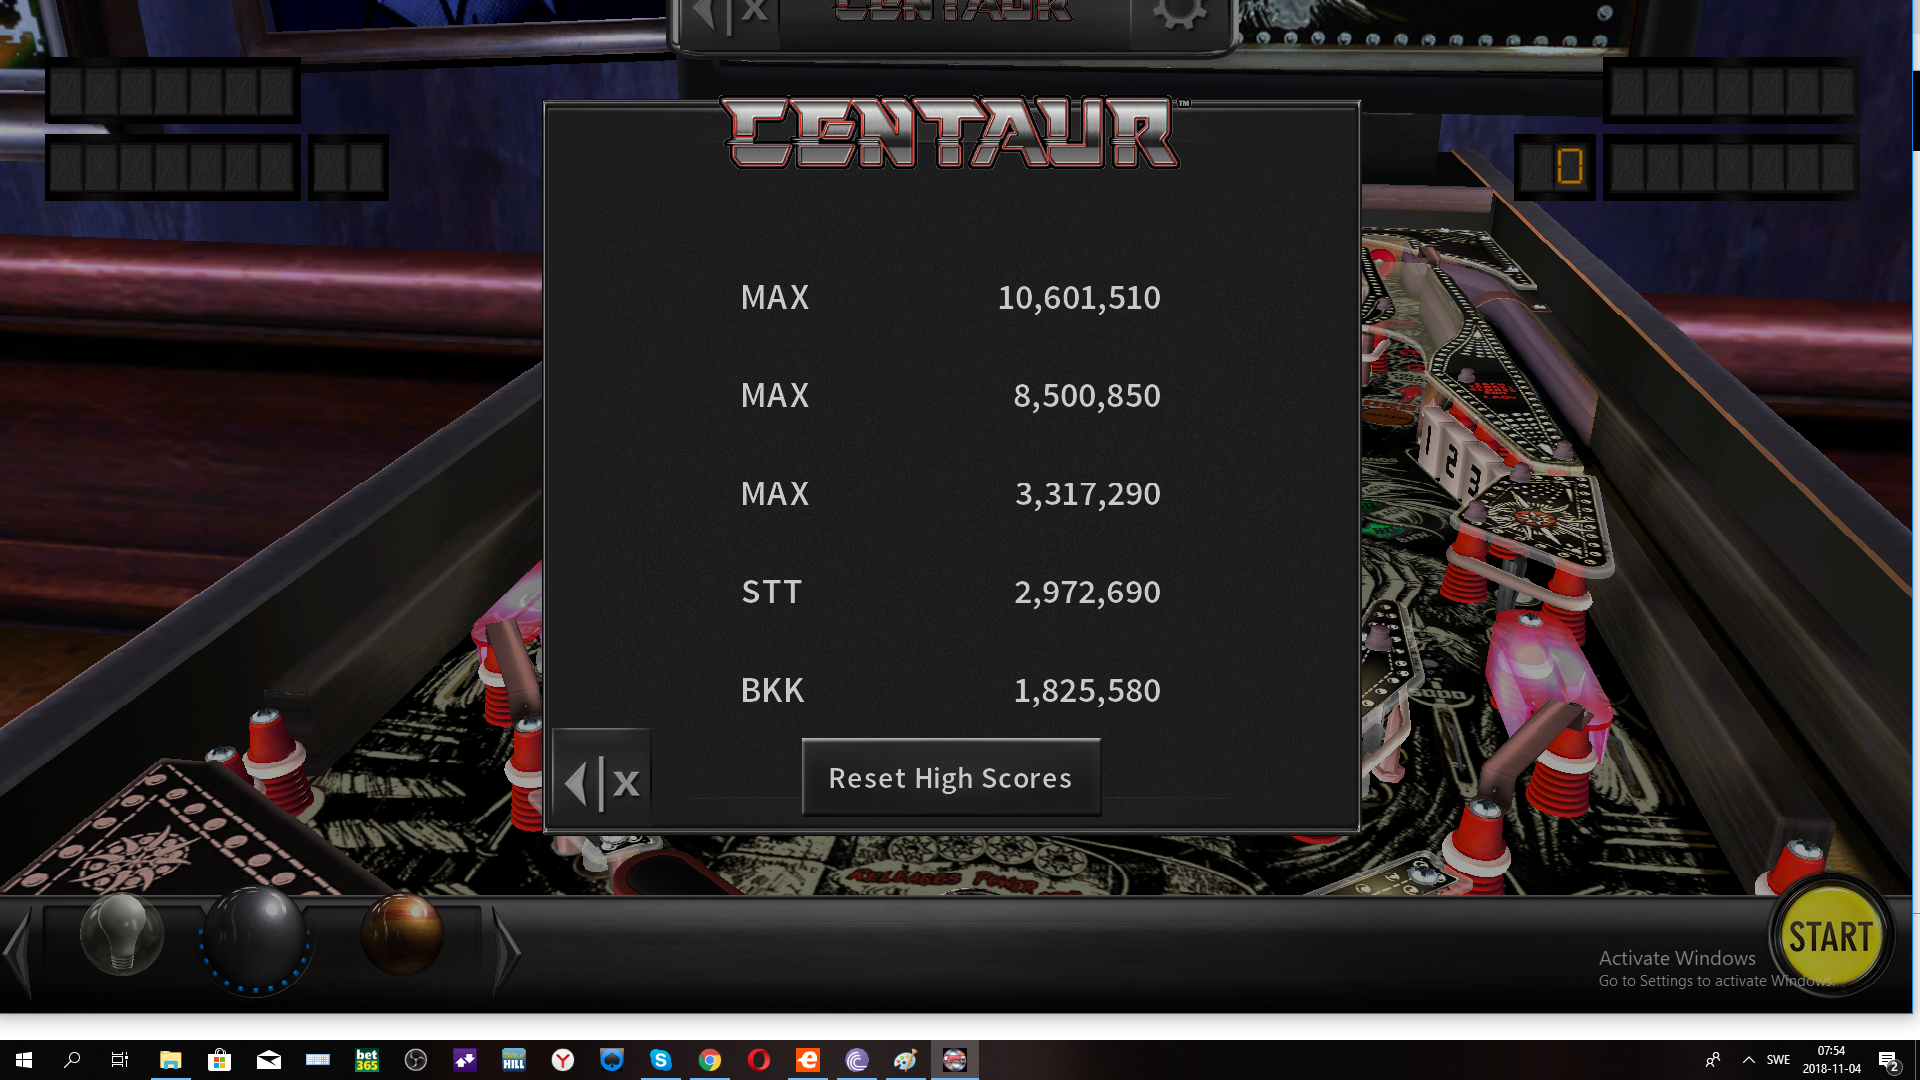 maxgreat: Pinball Arcade: Centaur (PC) 10,601,510 points on 2018-11-04 01:54:53